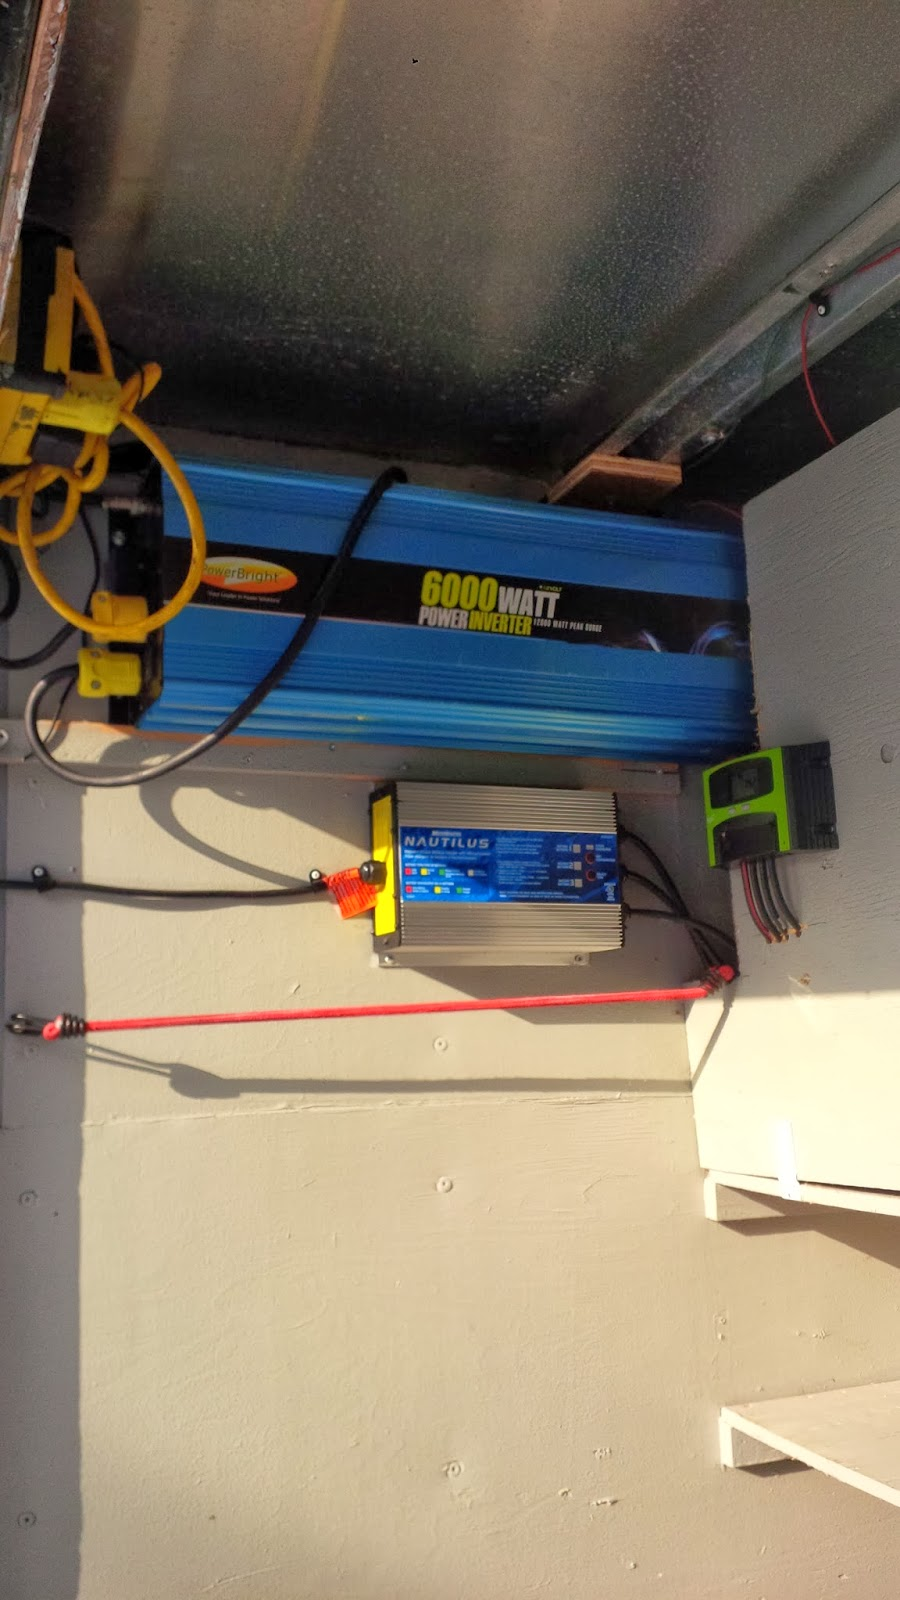 Power inverter in eavestrough trailer